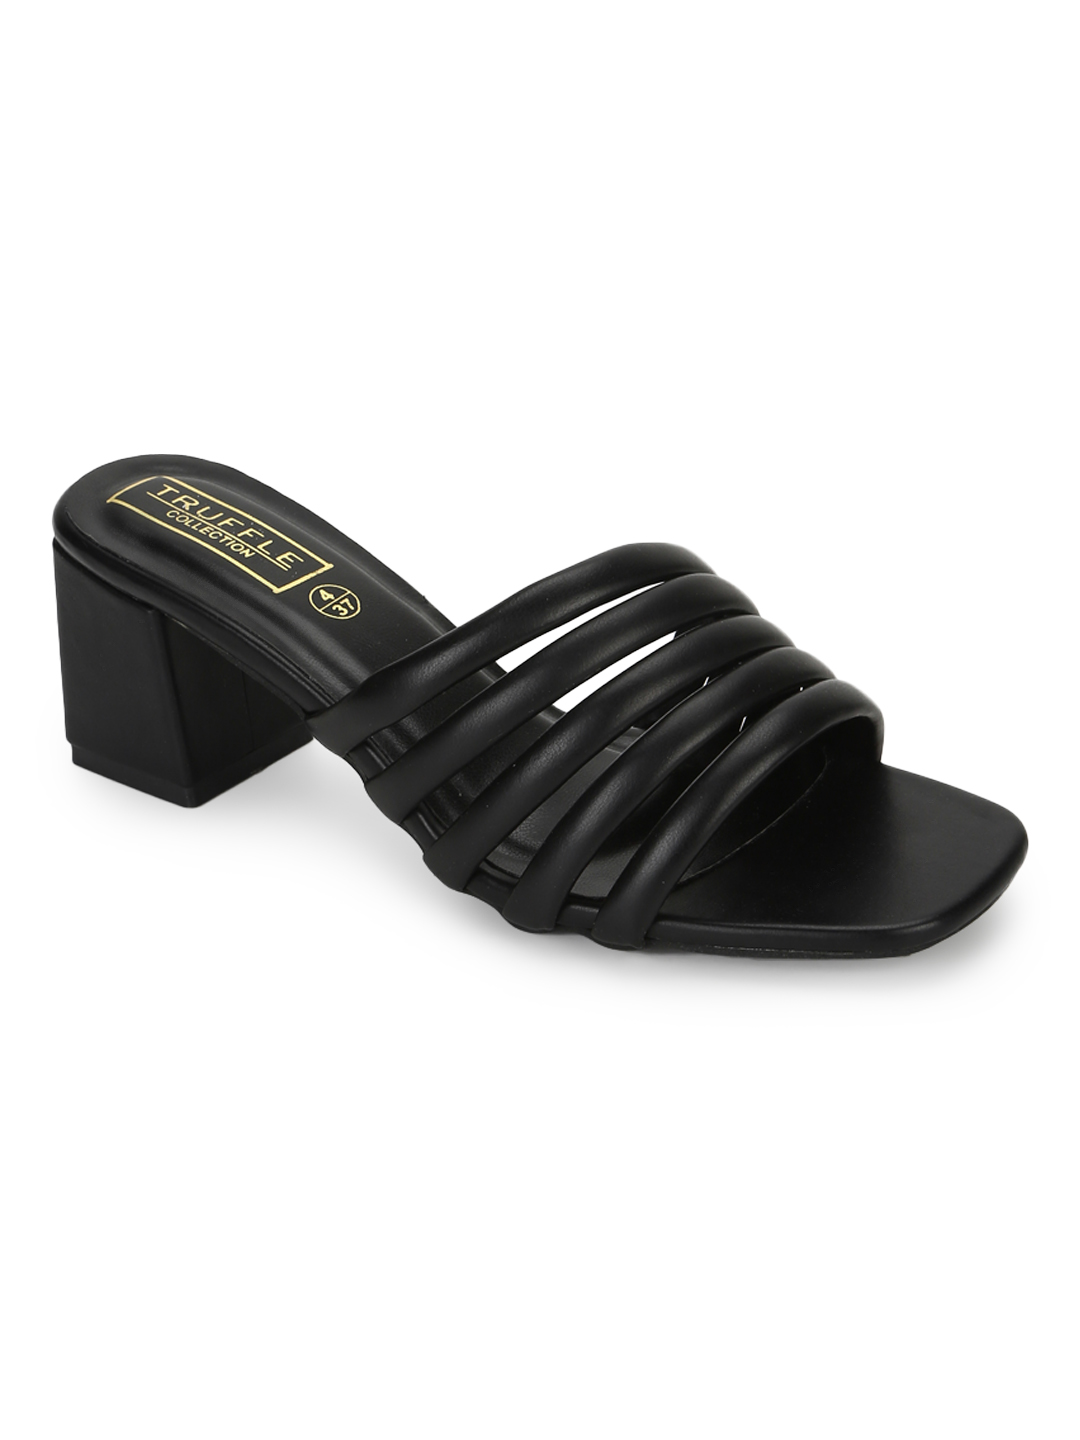 Truffle Collection | Truffle Collection Black PU Block Heel Mules